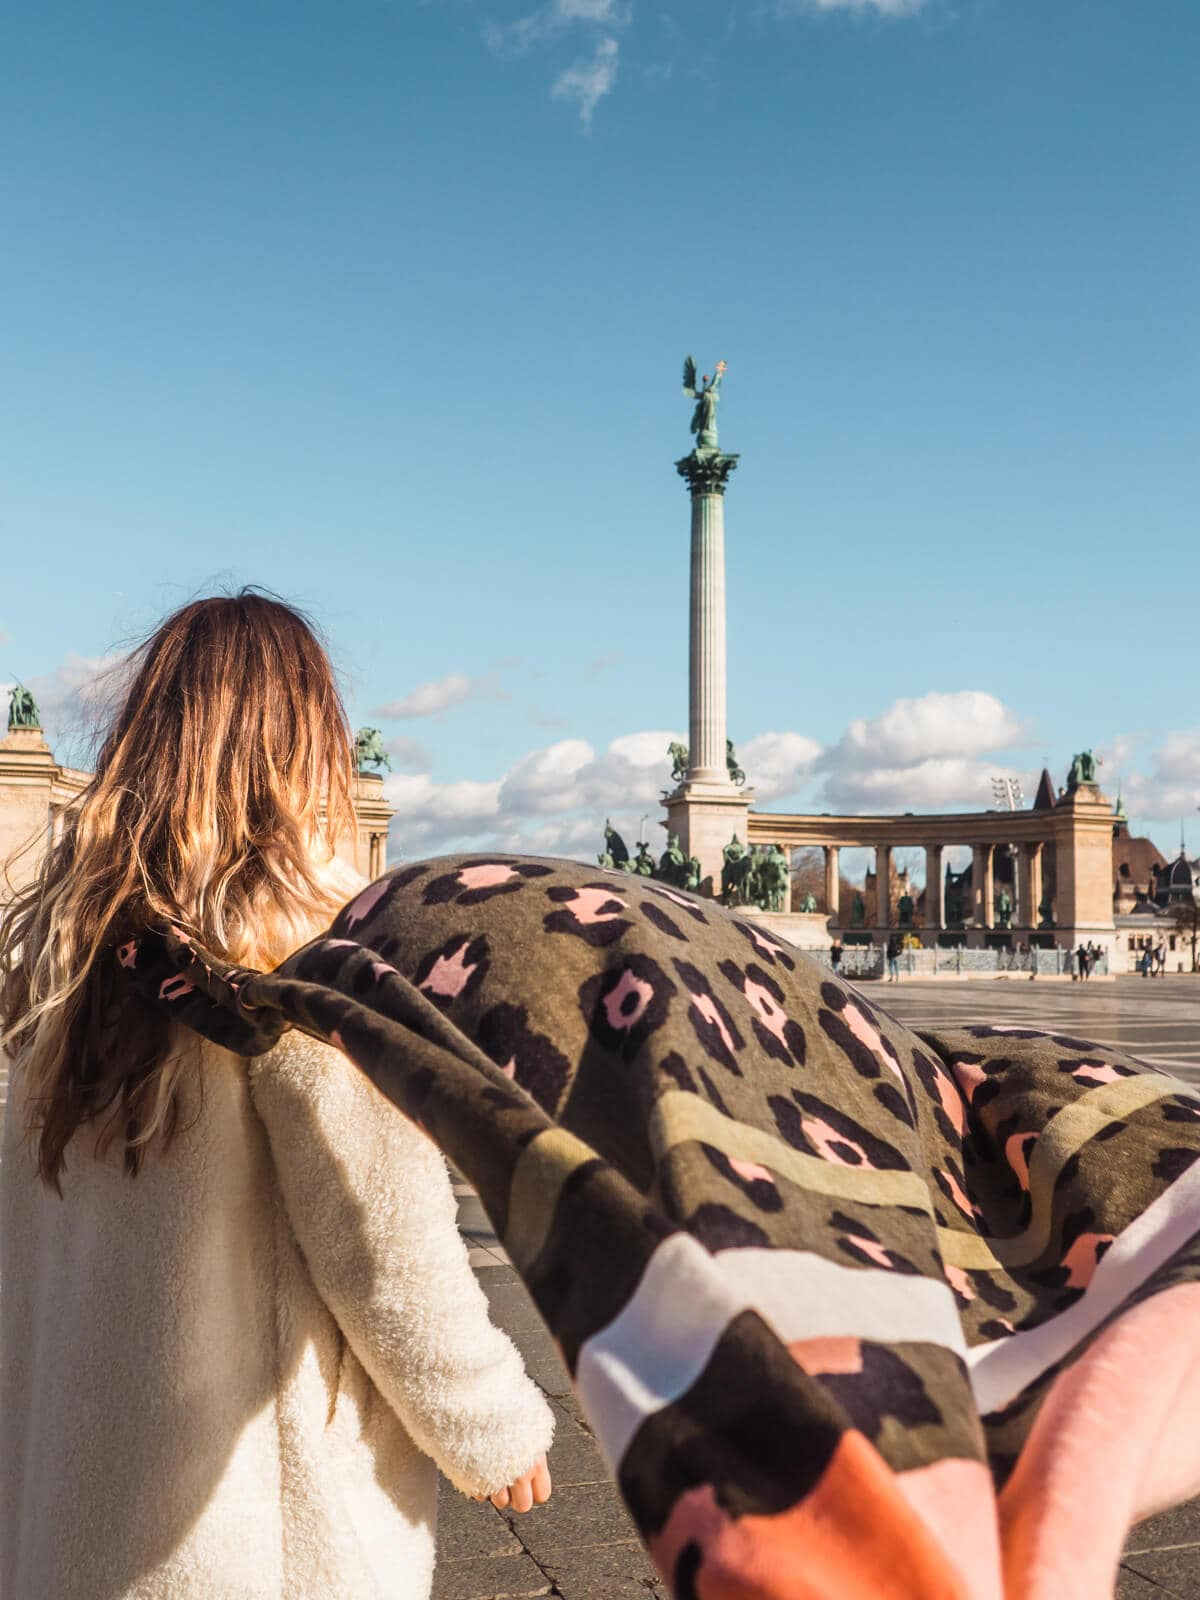 Budapest Instagram photo guide - Hero Square on a windy winder day